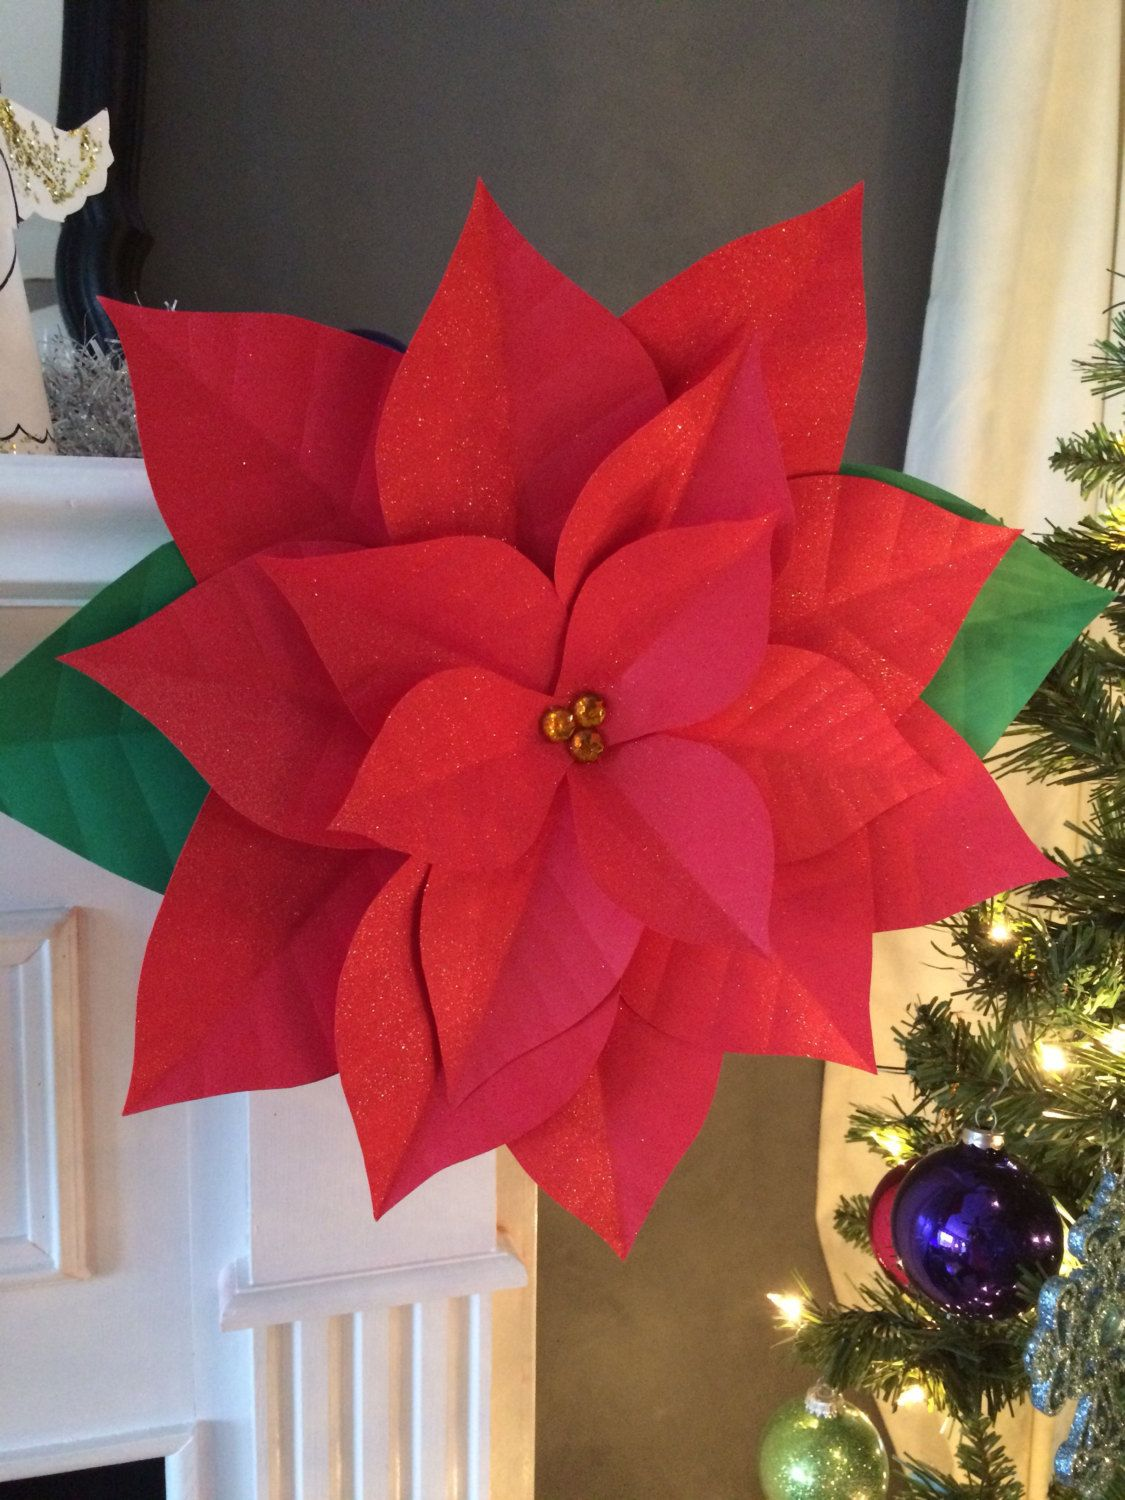 Red Christmas Flower.Set Of 3 Large Medium And Small Paper Poinsettia Christmas